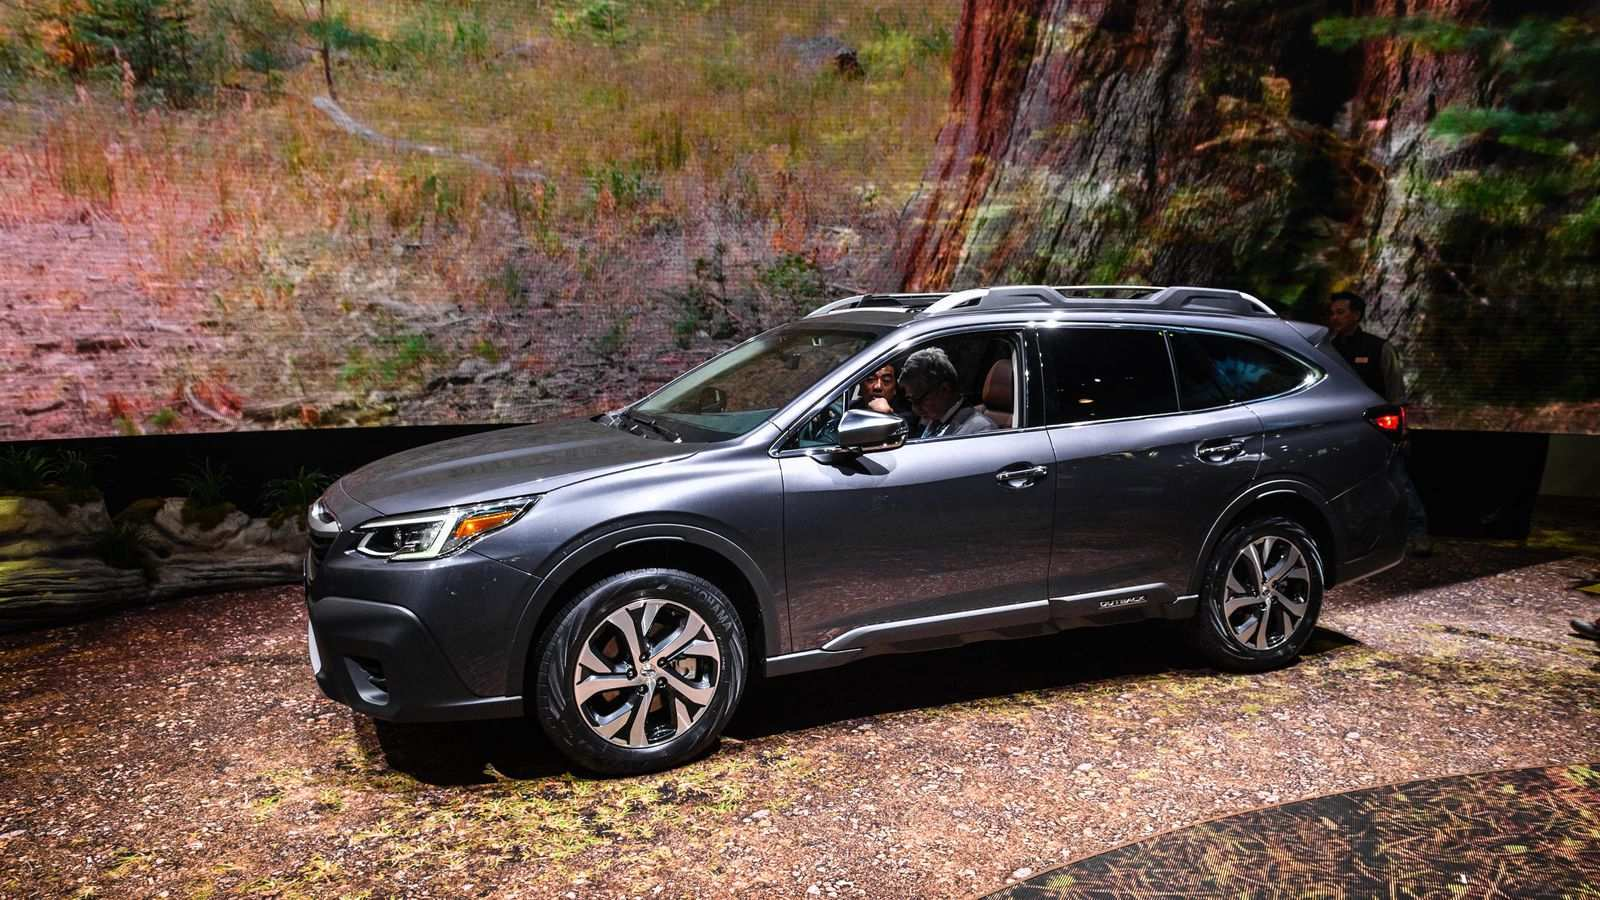 66 Best Review 2020 Subaru Outback Gas Mileage Release Date with 2020 Subaru Outback Gas Mileage